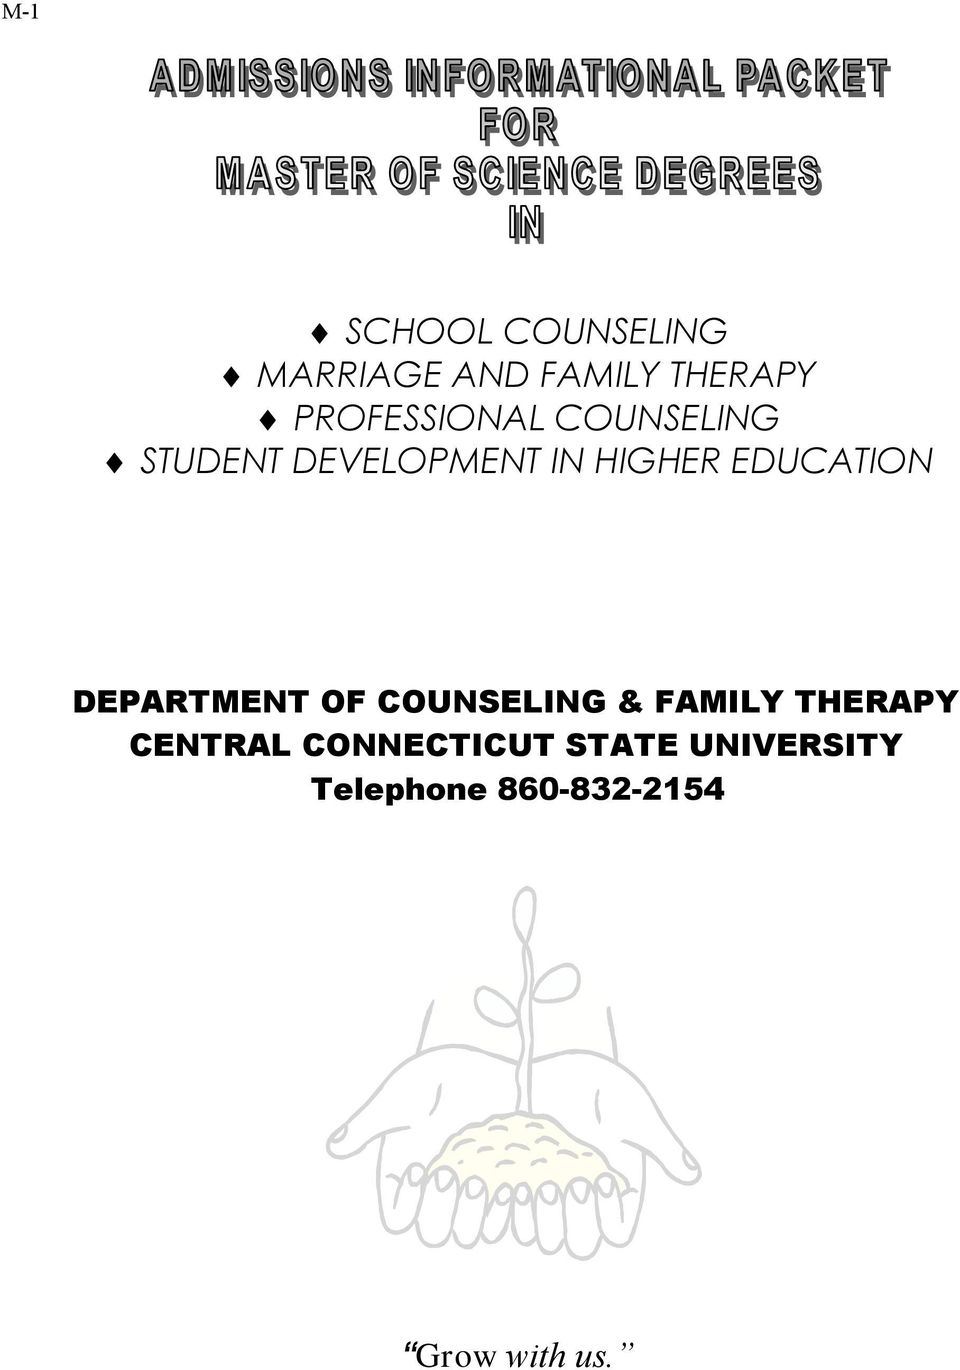 EDUCATION DEPARTMENT OF COUNSELING & FAMILY THERAPY